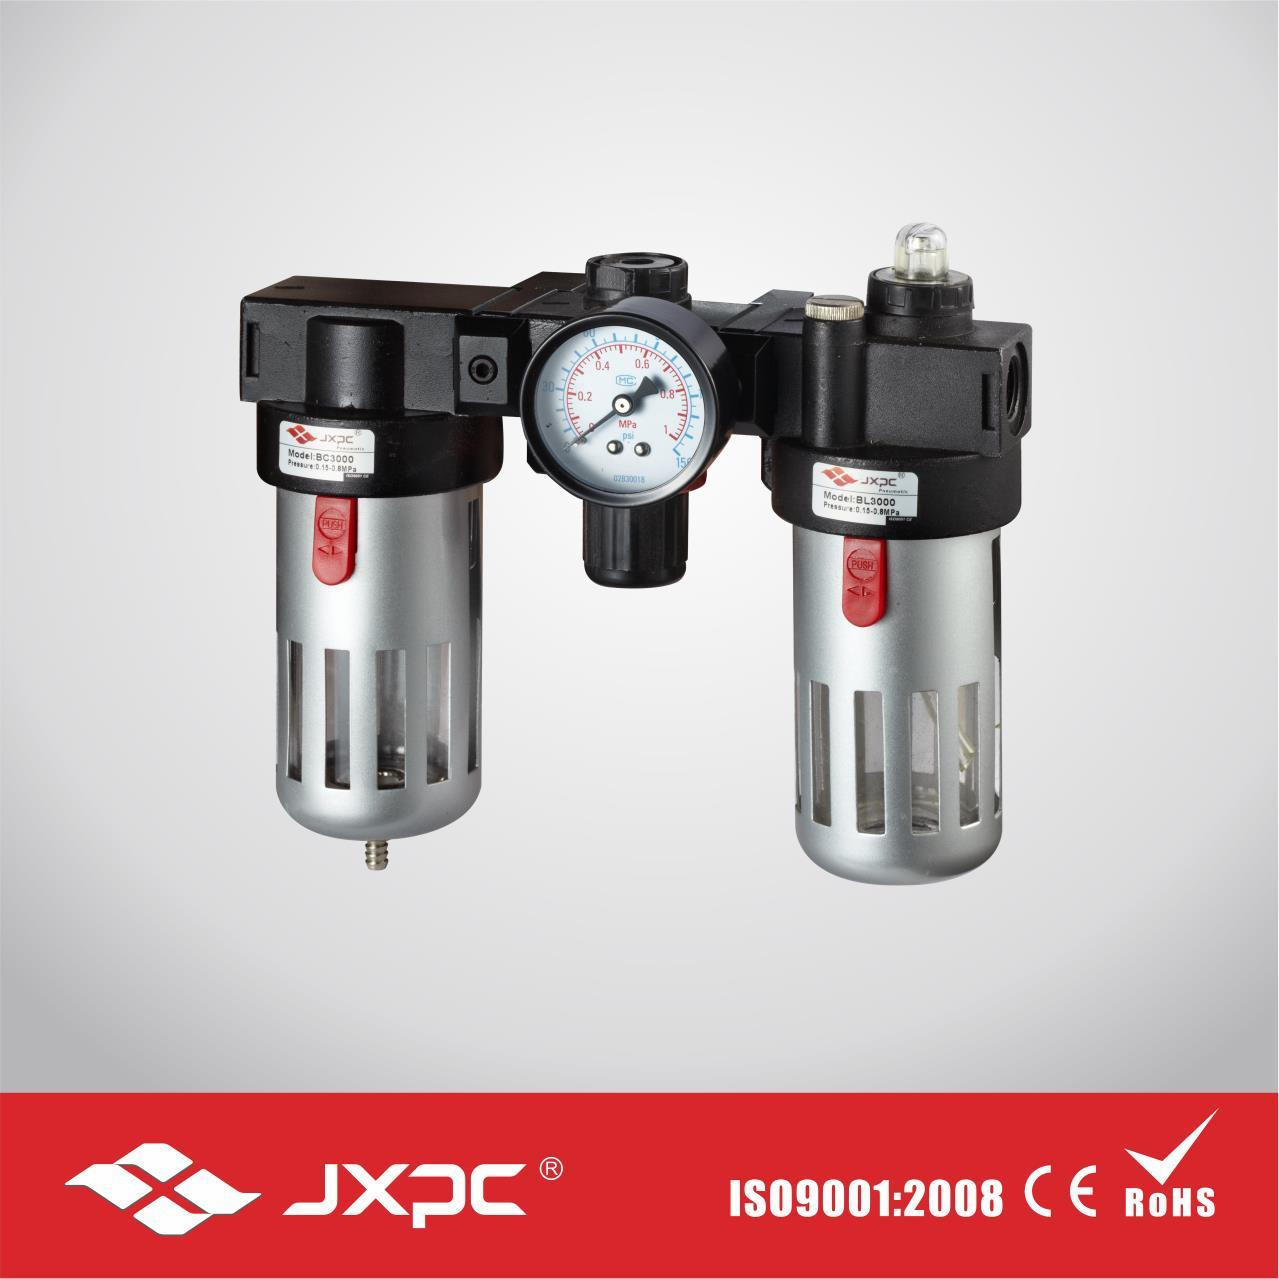 Airtac Pneumatic Air Source Treatment Units with Bowl Guard